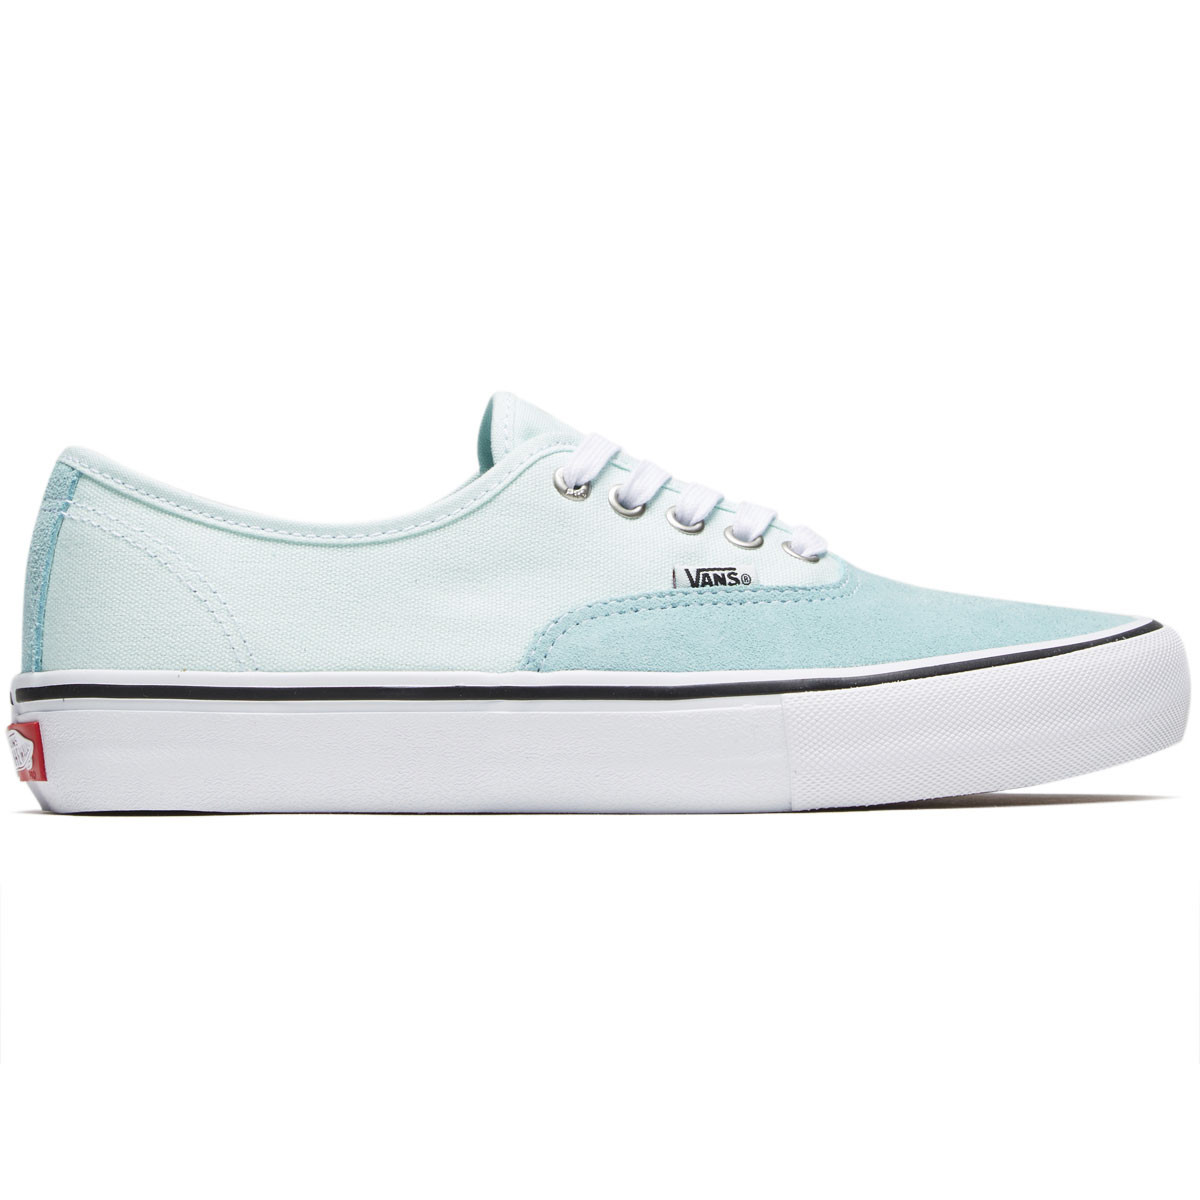 7ff77dd8fc9 Vans Authentic Pro Shoes - Aqua Haze Soothing Sea